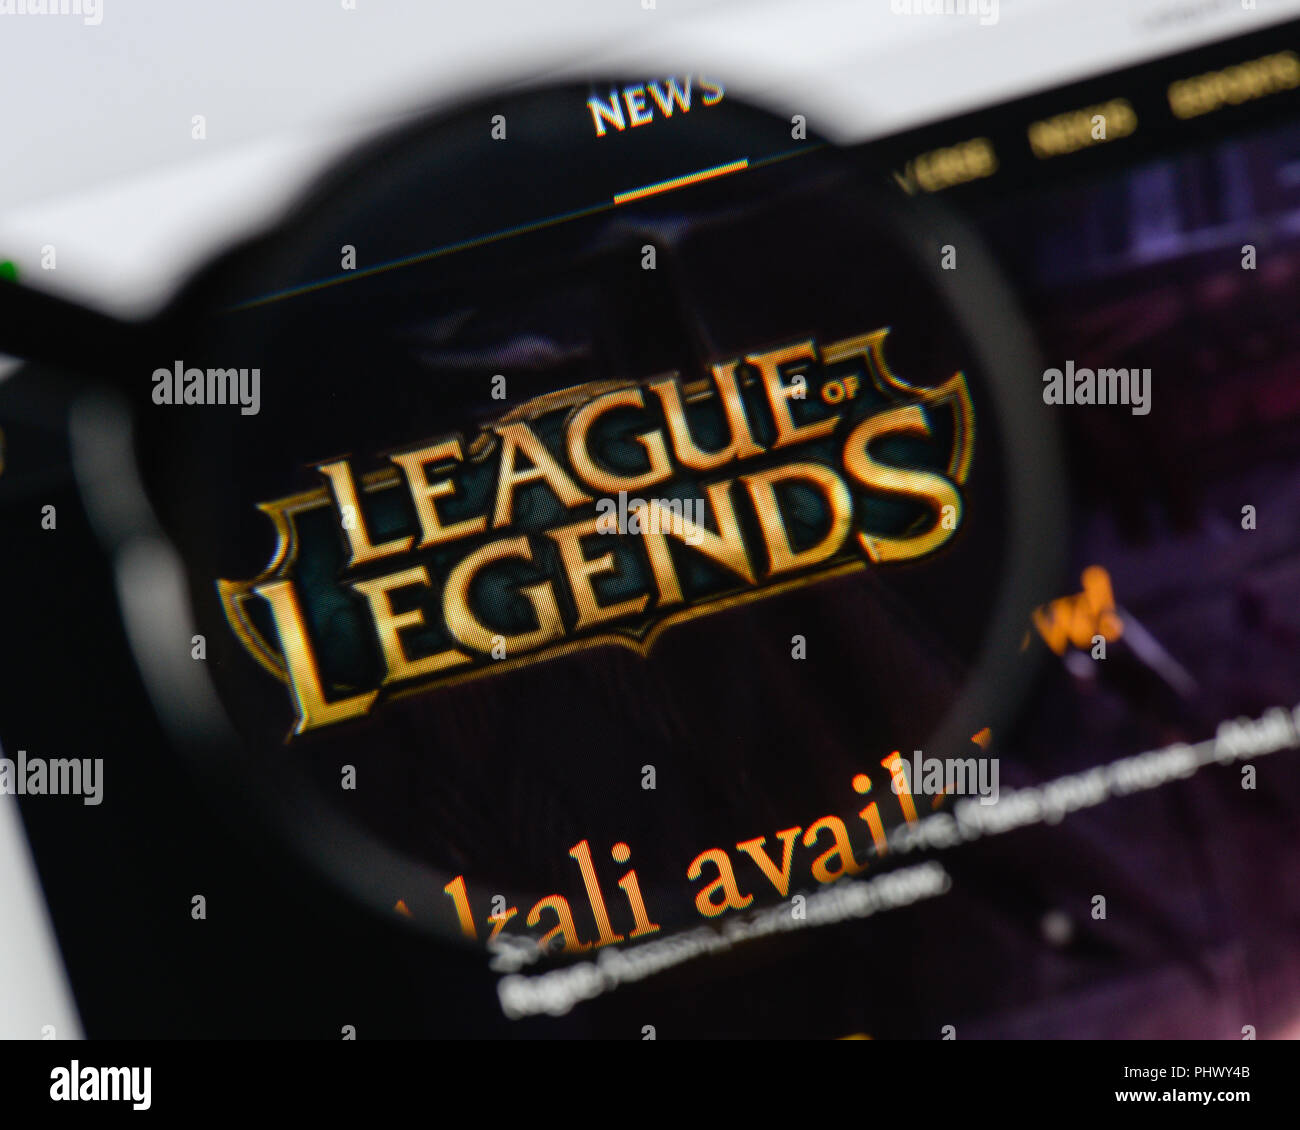 Milan, Italy - August 20, 2018: League Of Legends website homepage. League Of Legends logo visible. - Stock Image